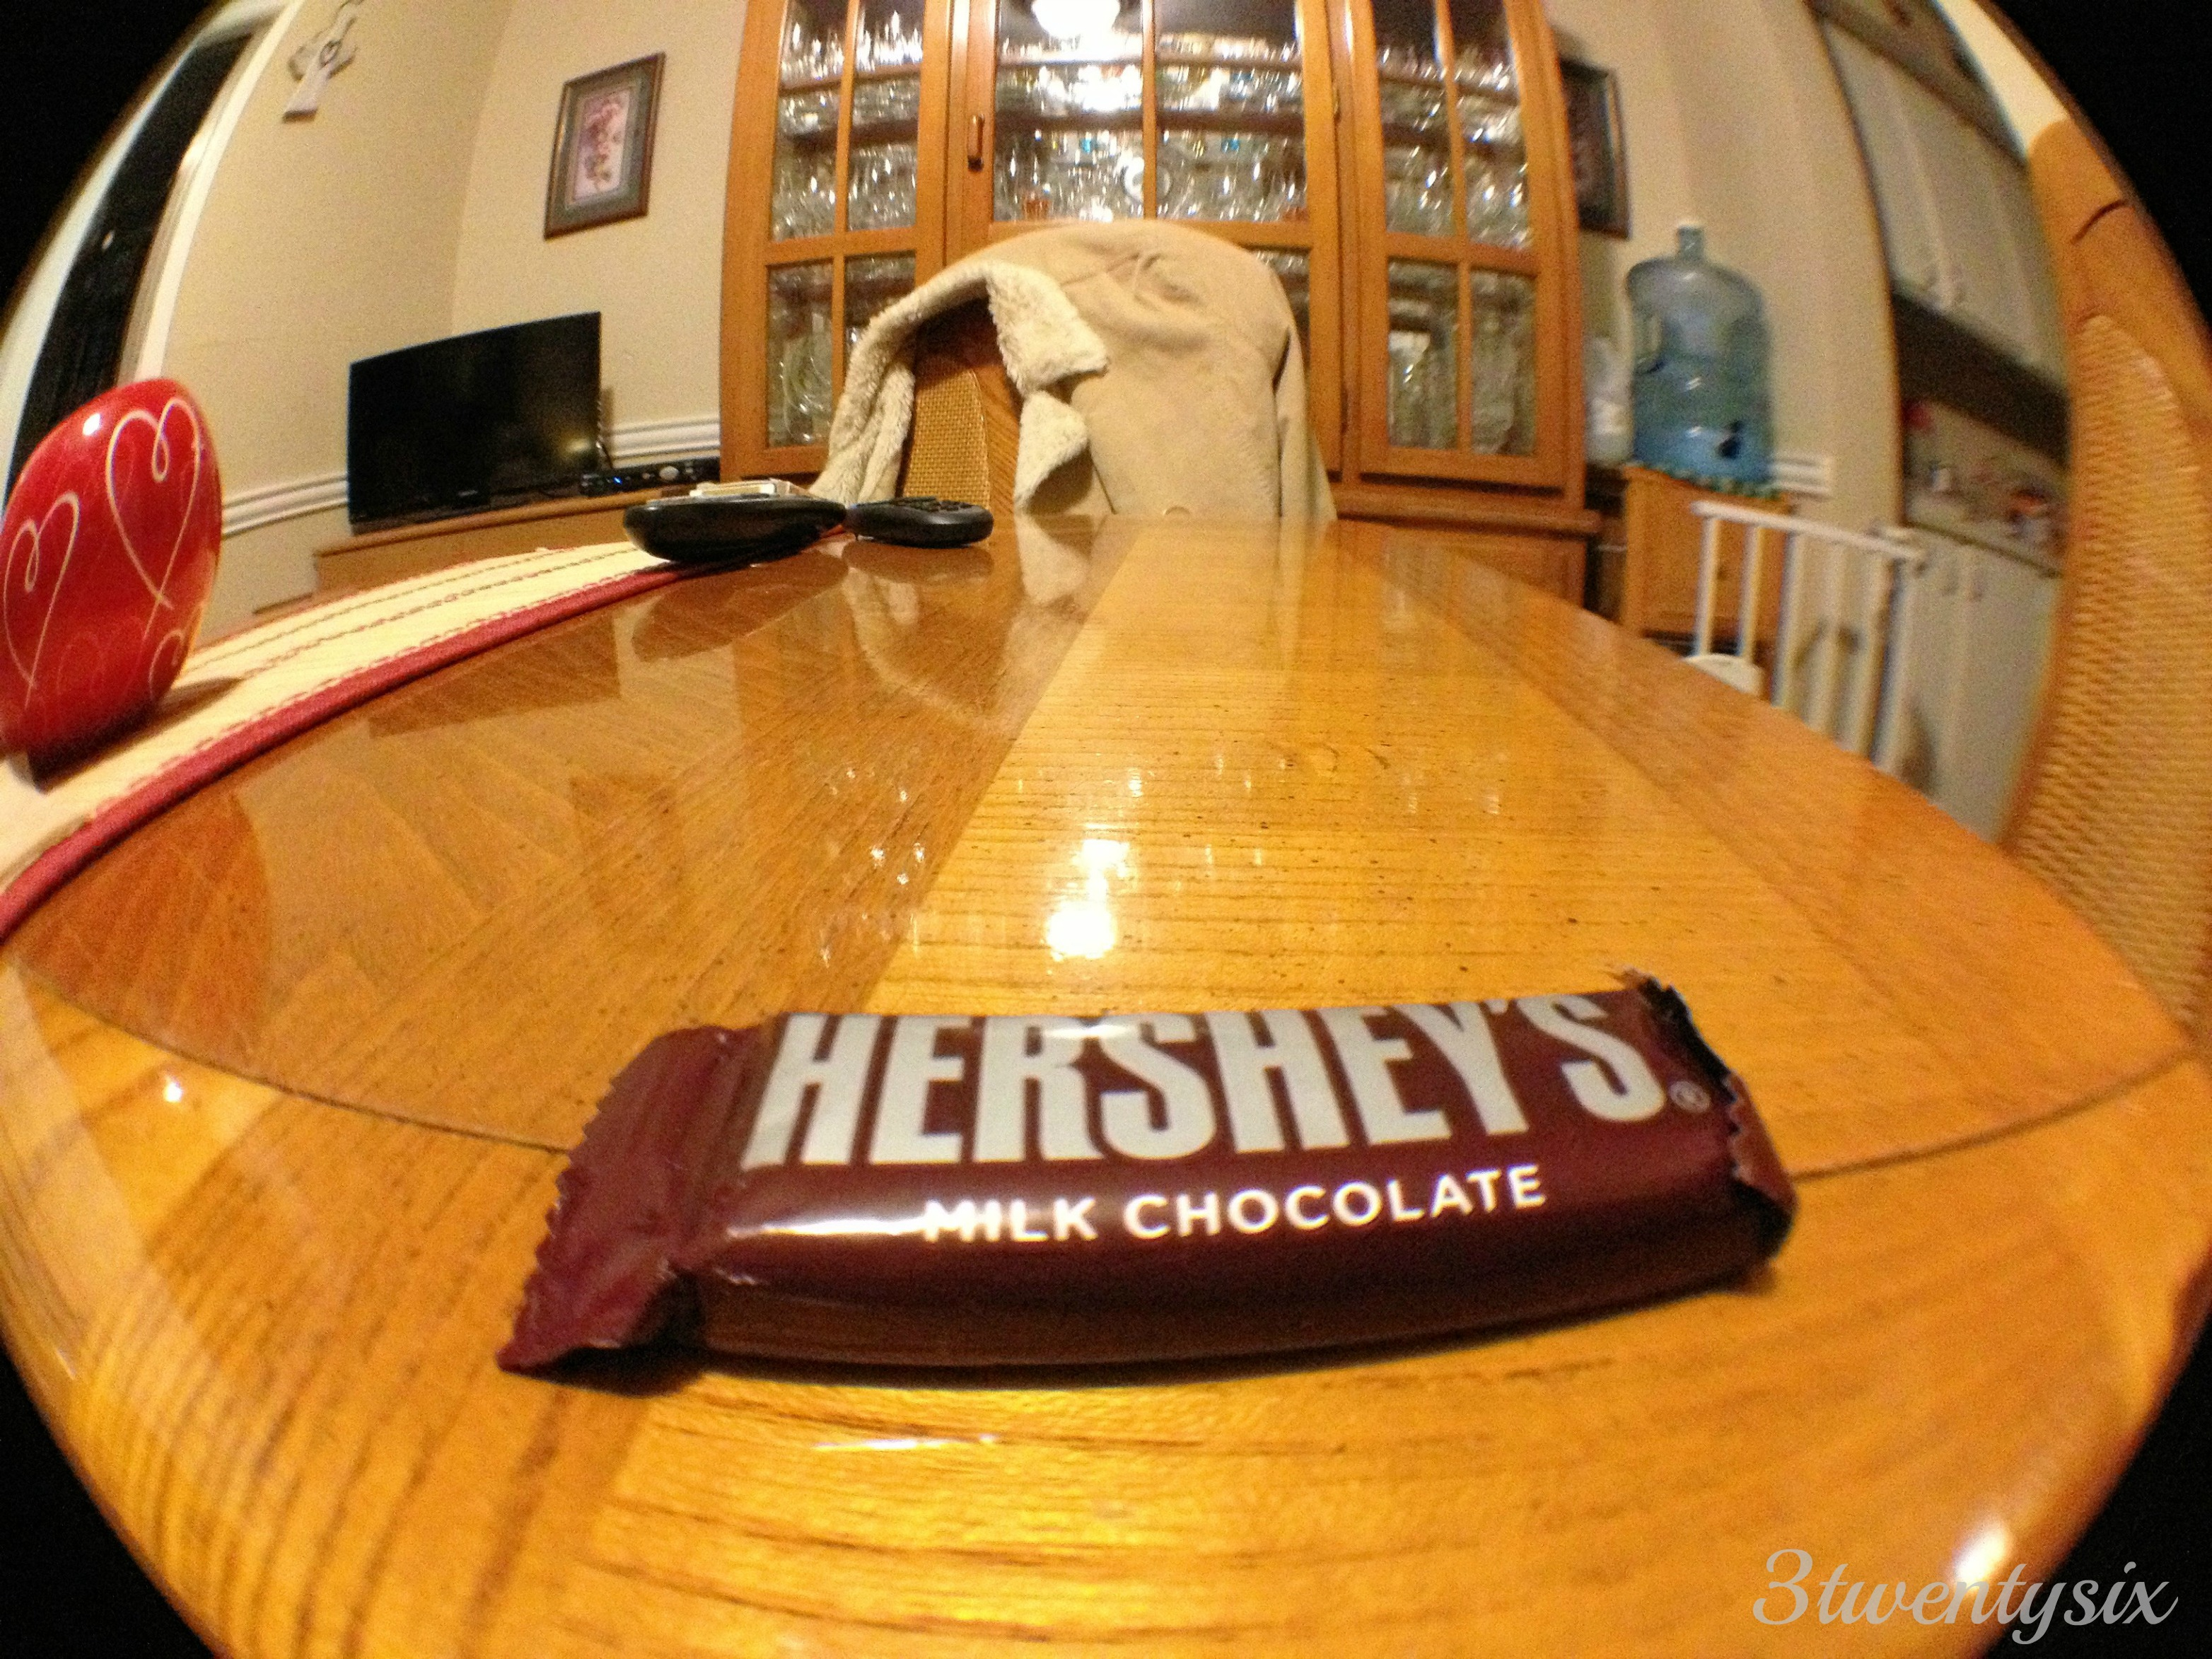 Itty bitty Hershey's looking huge